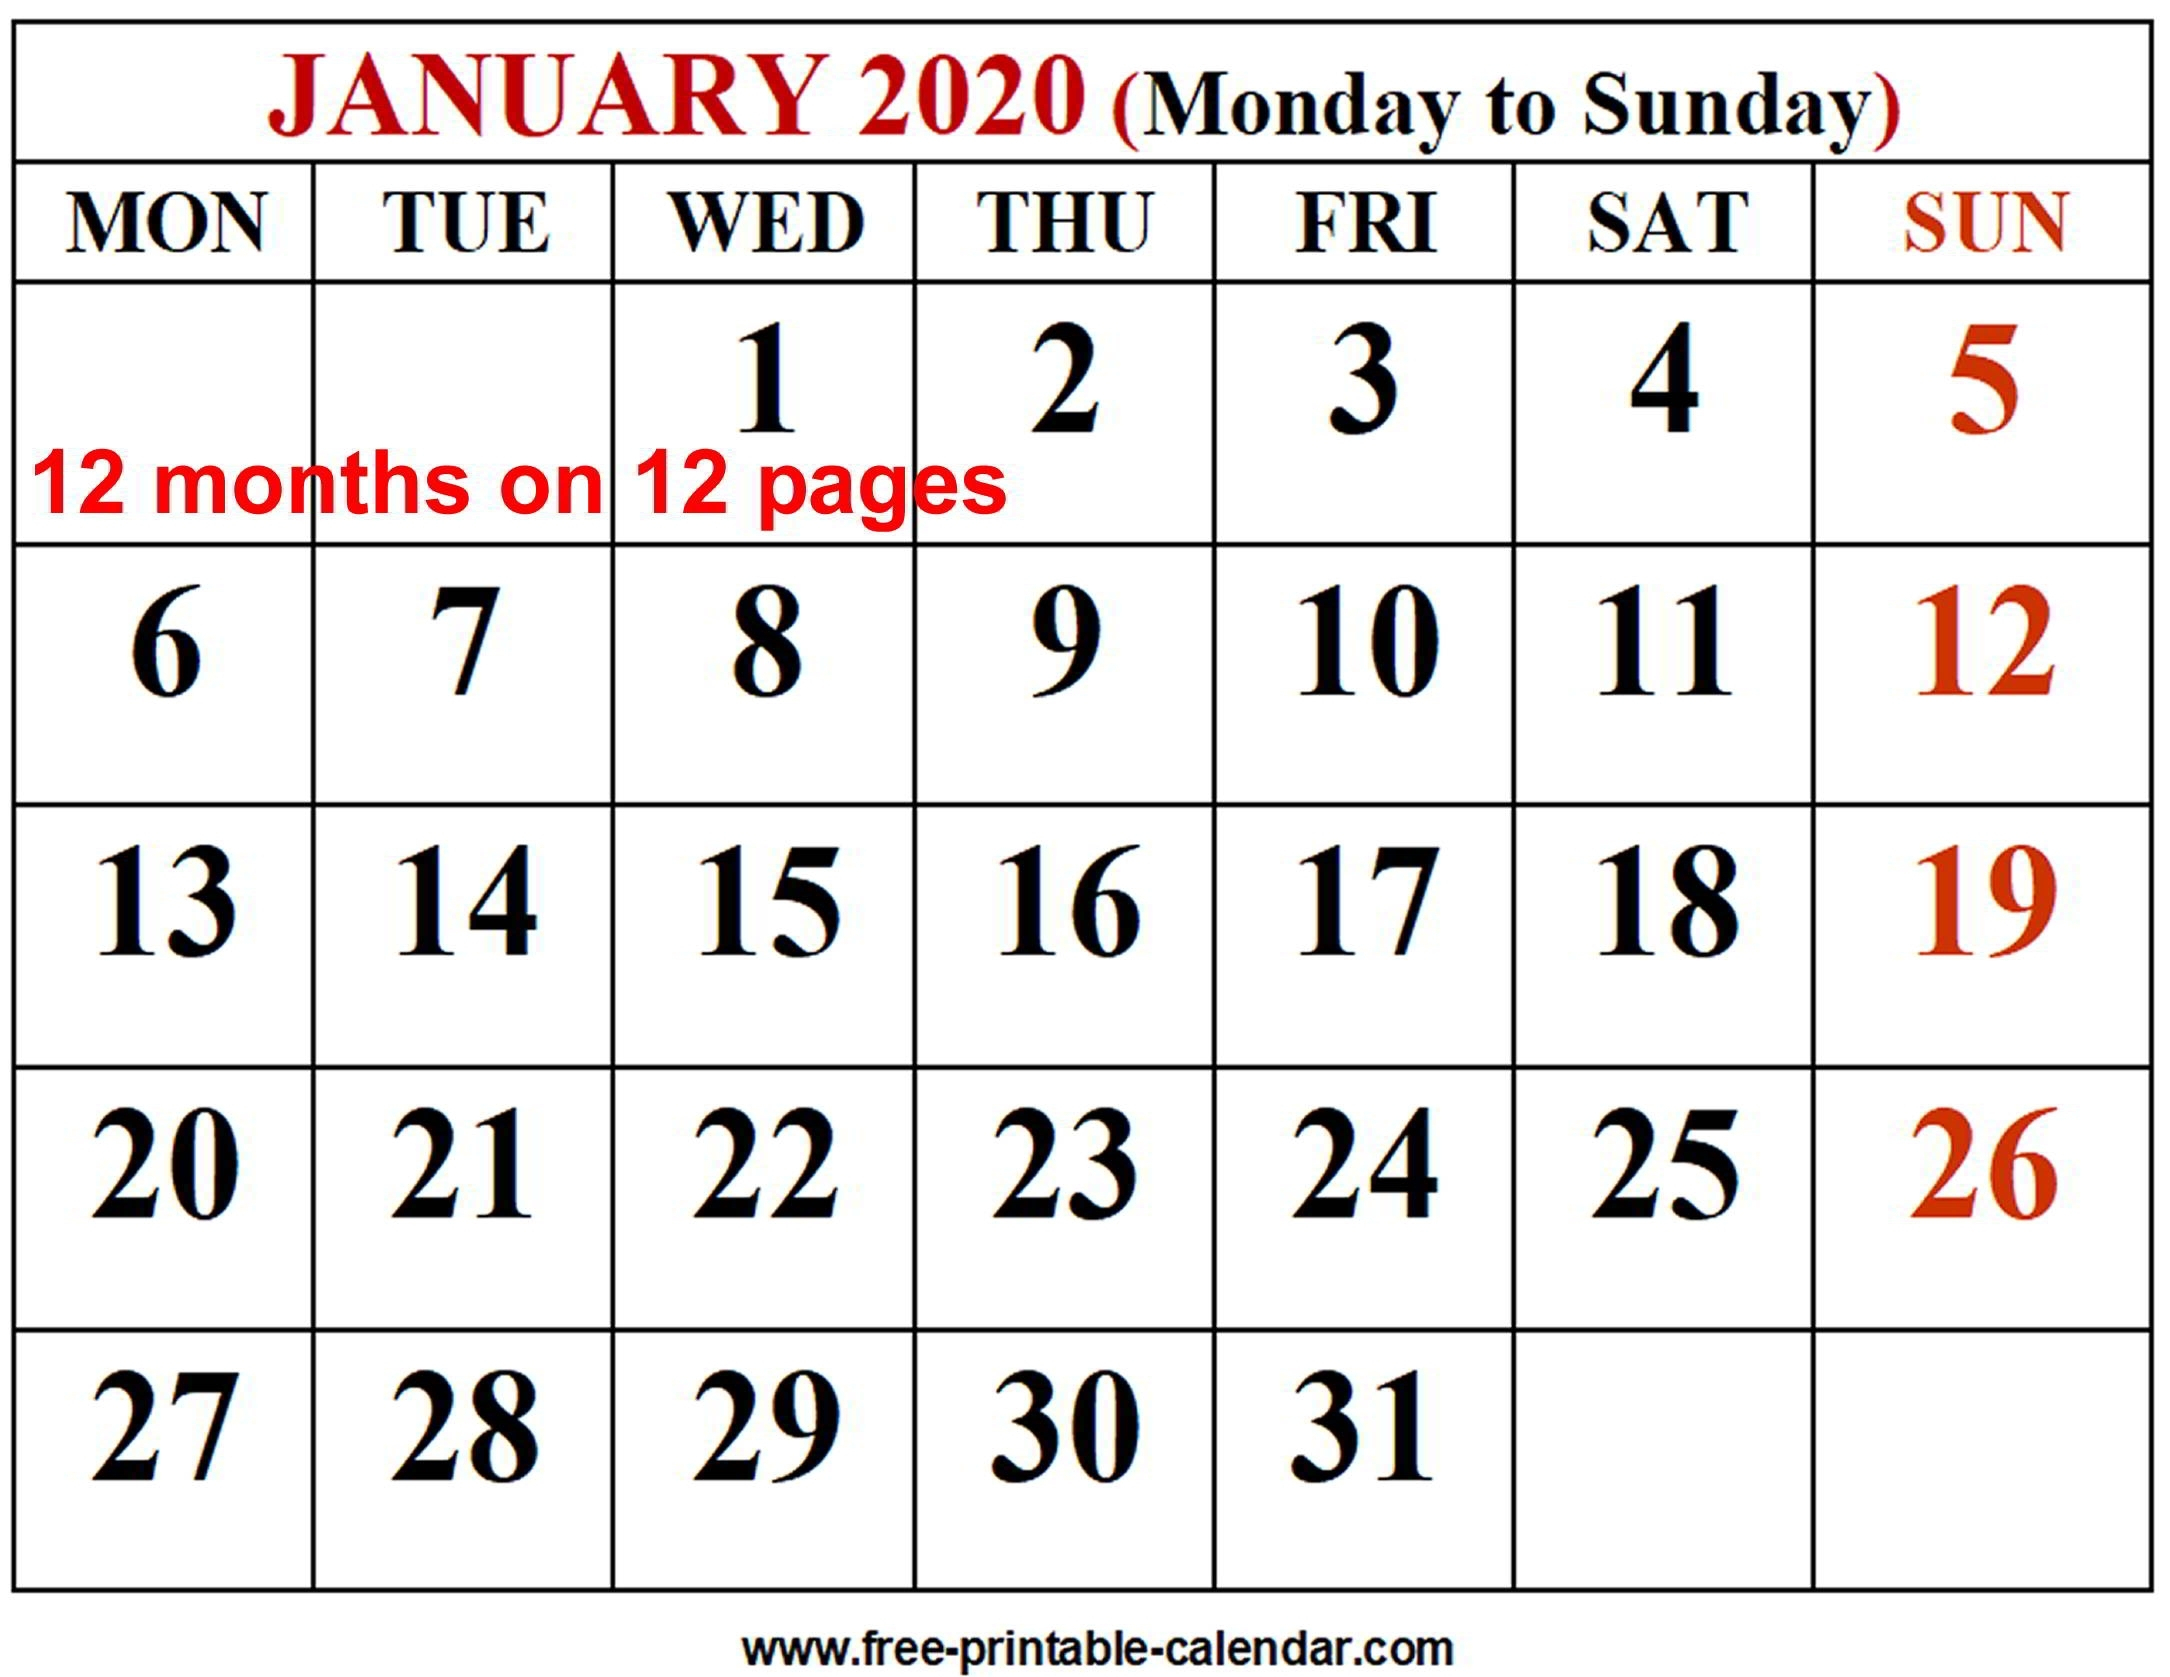 Free Printable Calendar 2020 Monthly 4 Months On A Page intended for 3 Month Calendar Printable 2020